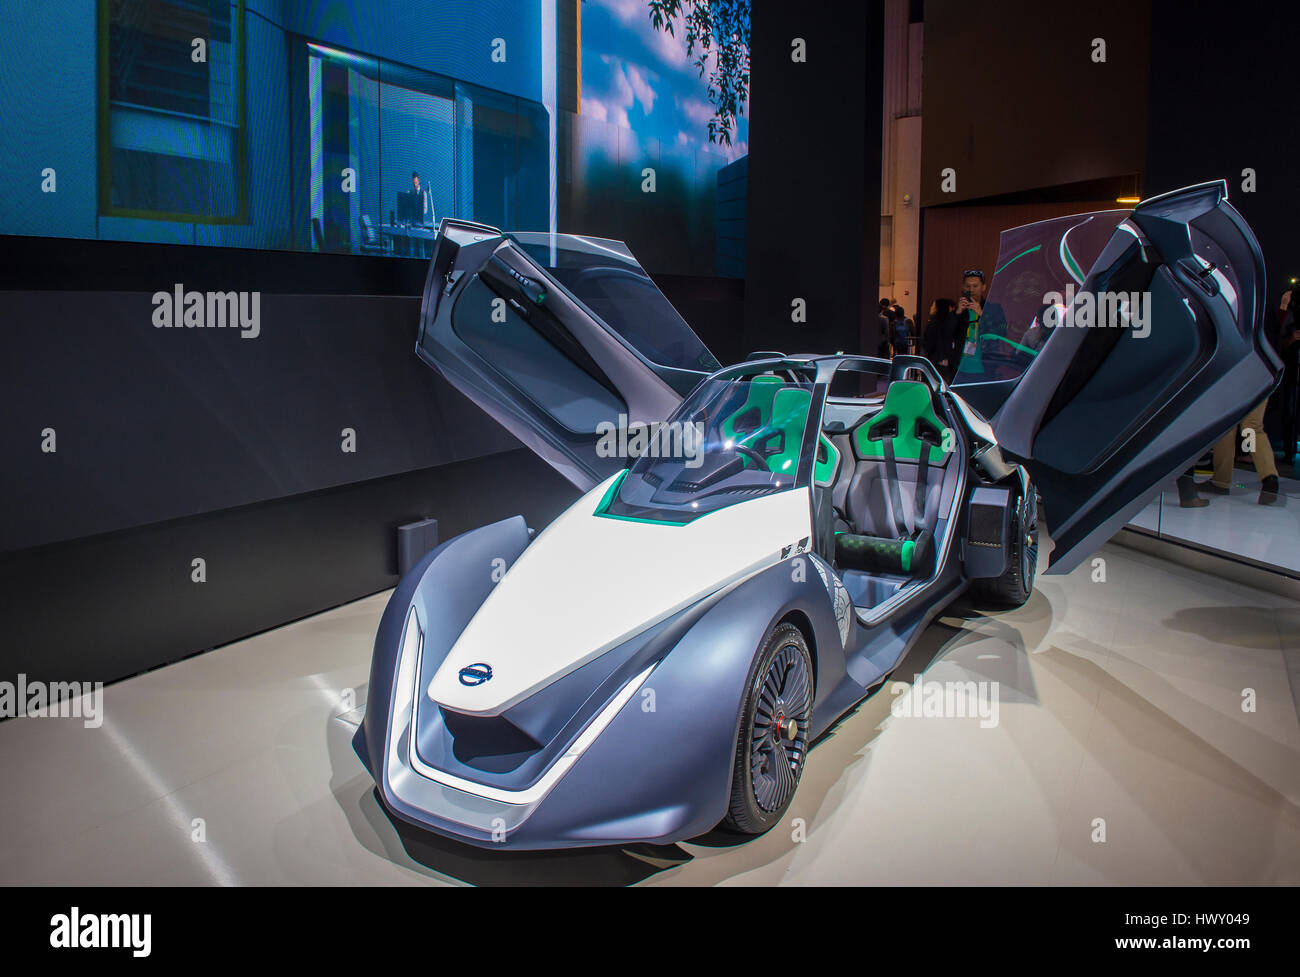 LAS VEGAS - JAN 08 : The Nissan Concept car at the CES Show in Las Vegas, Navada, on January 08, 2017. CES is the - Stock Image